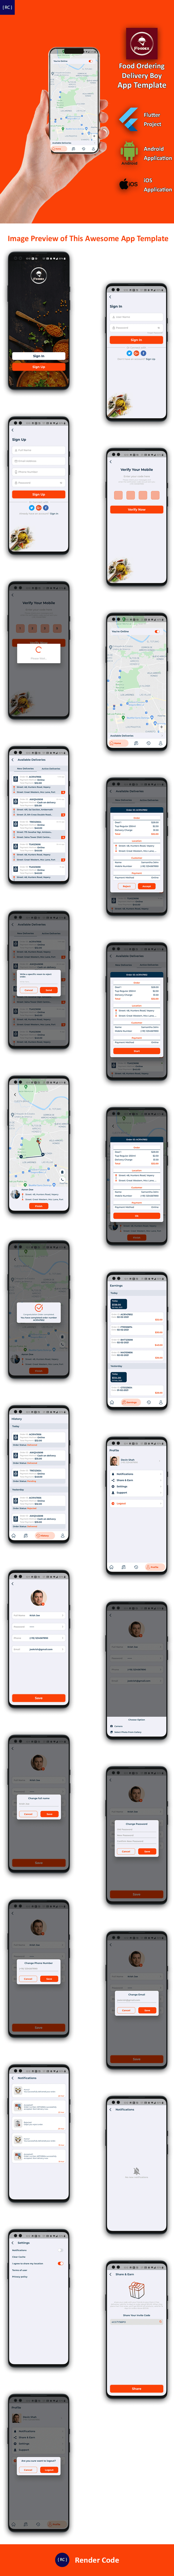 Food Ordering App   Food Delivery App   3 Apps   Android + iOS App Template   FLUTTER   FoodEx - 10